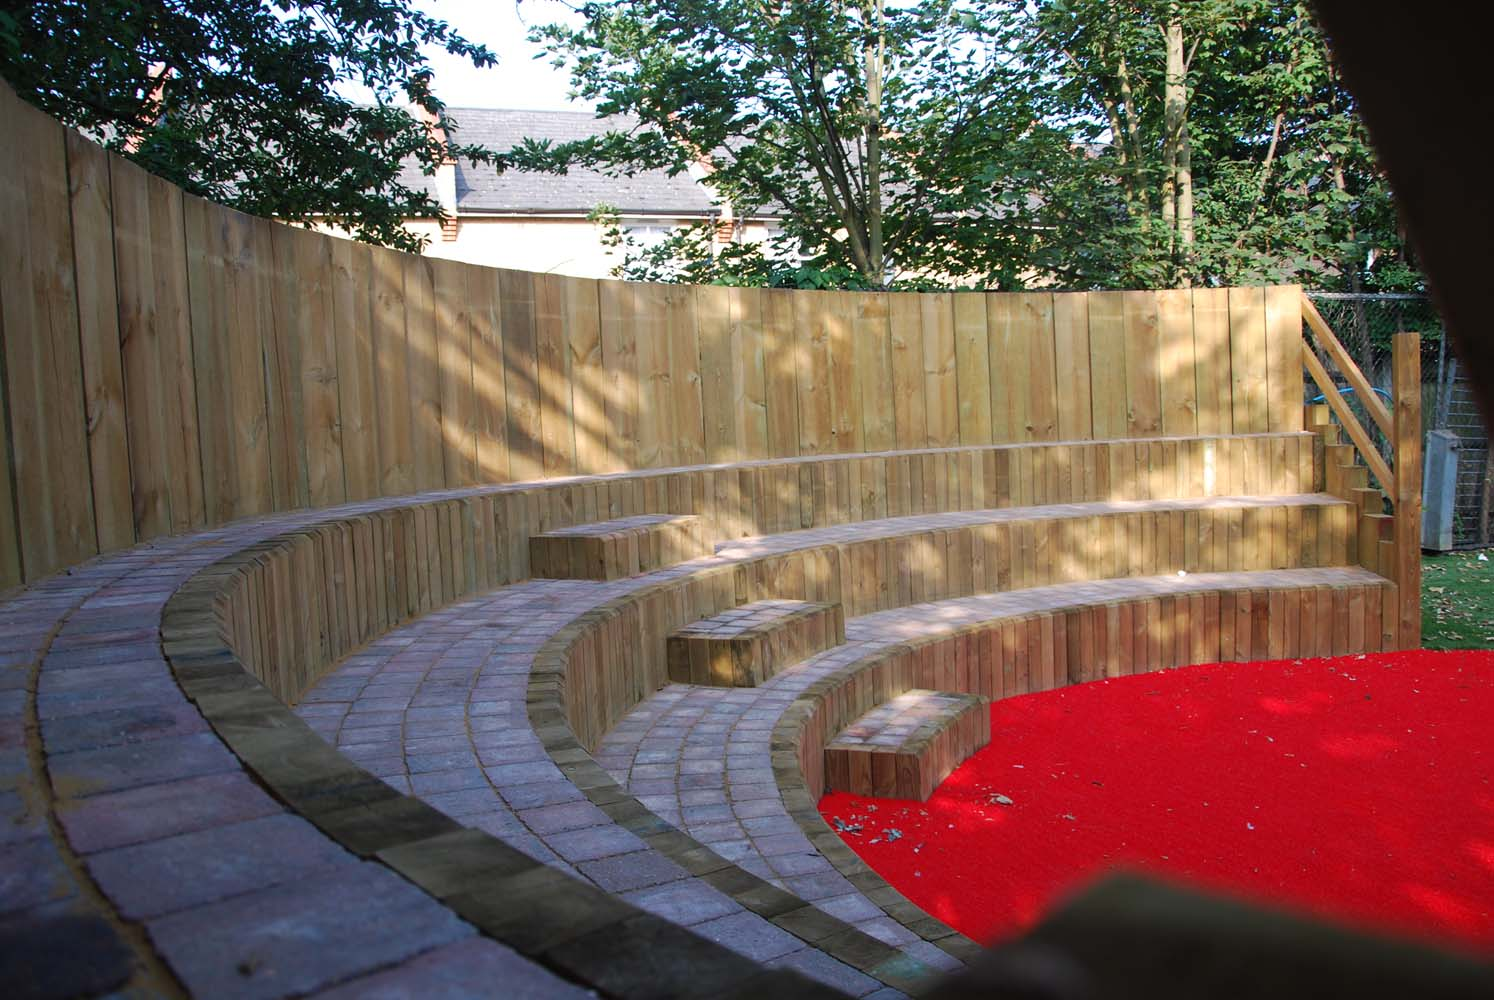 View of an outdoor seating area